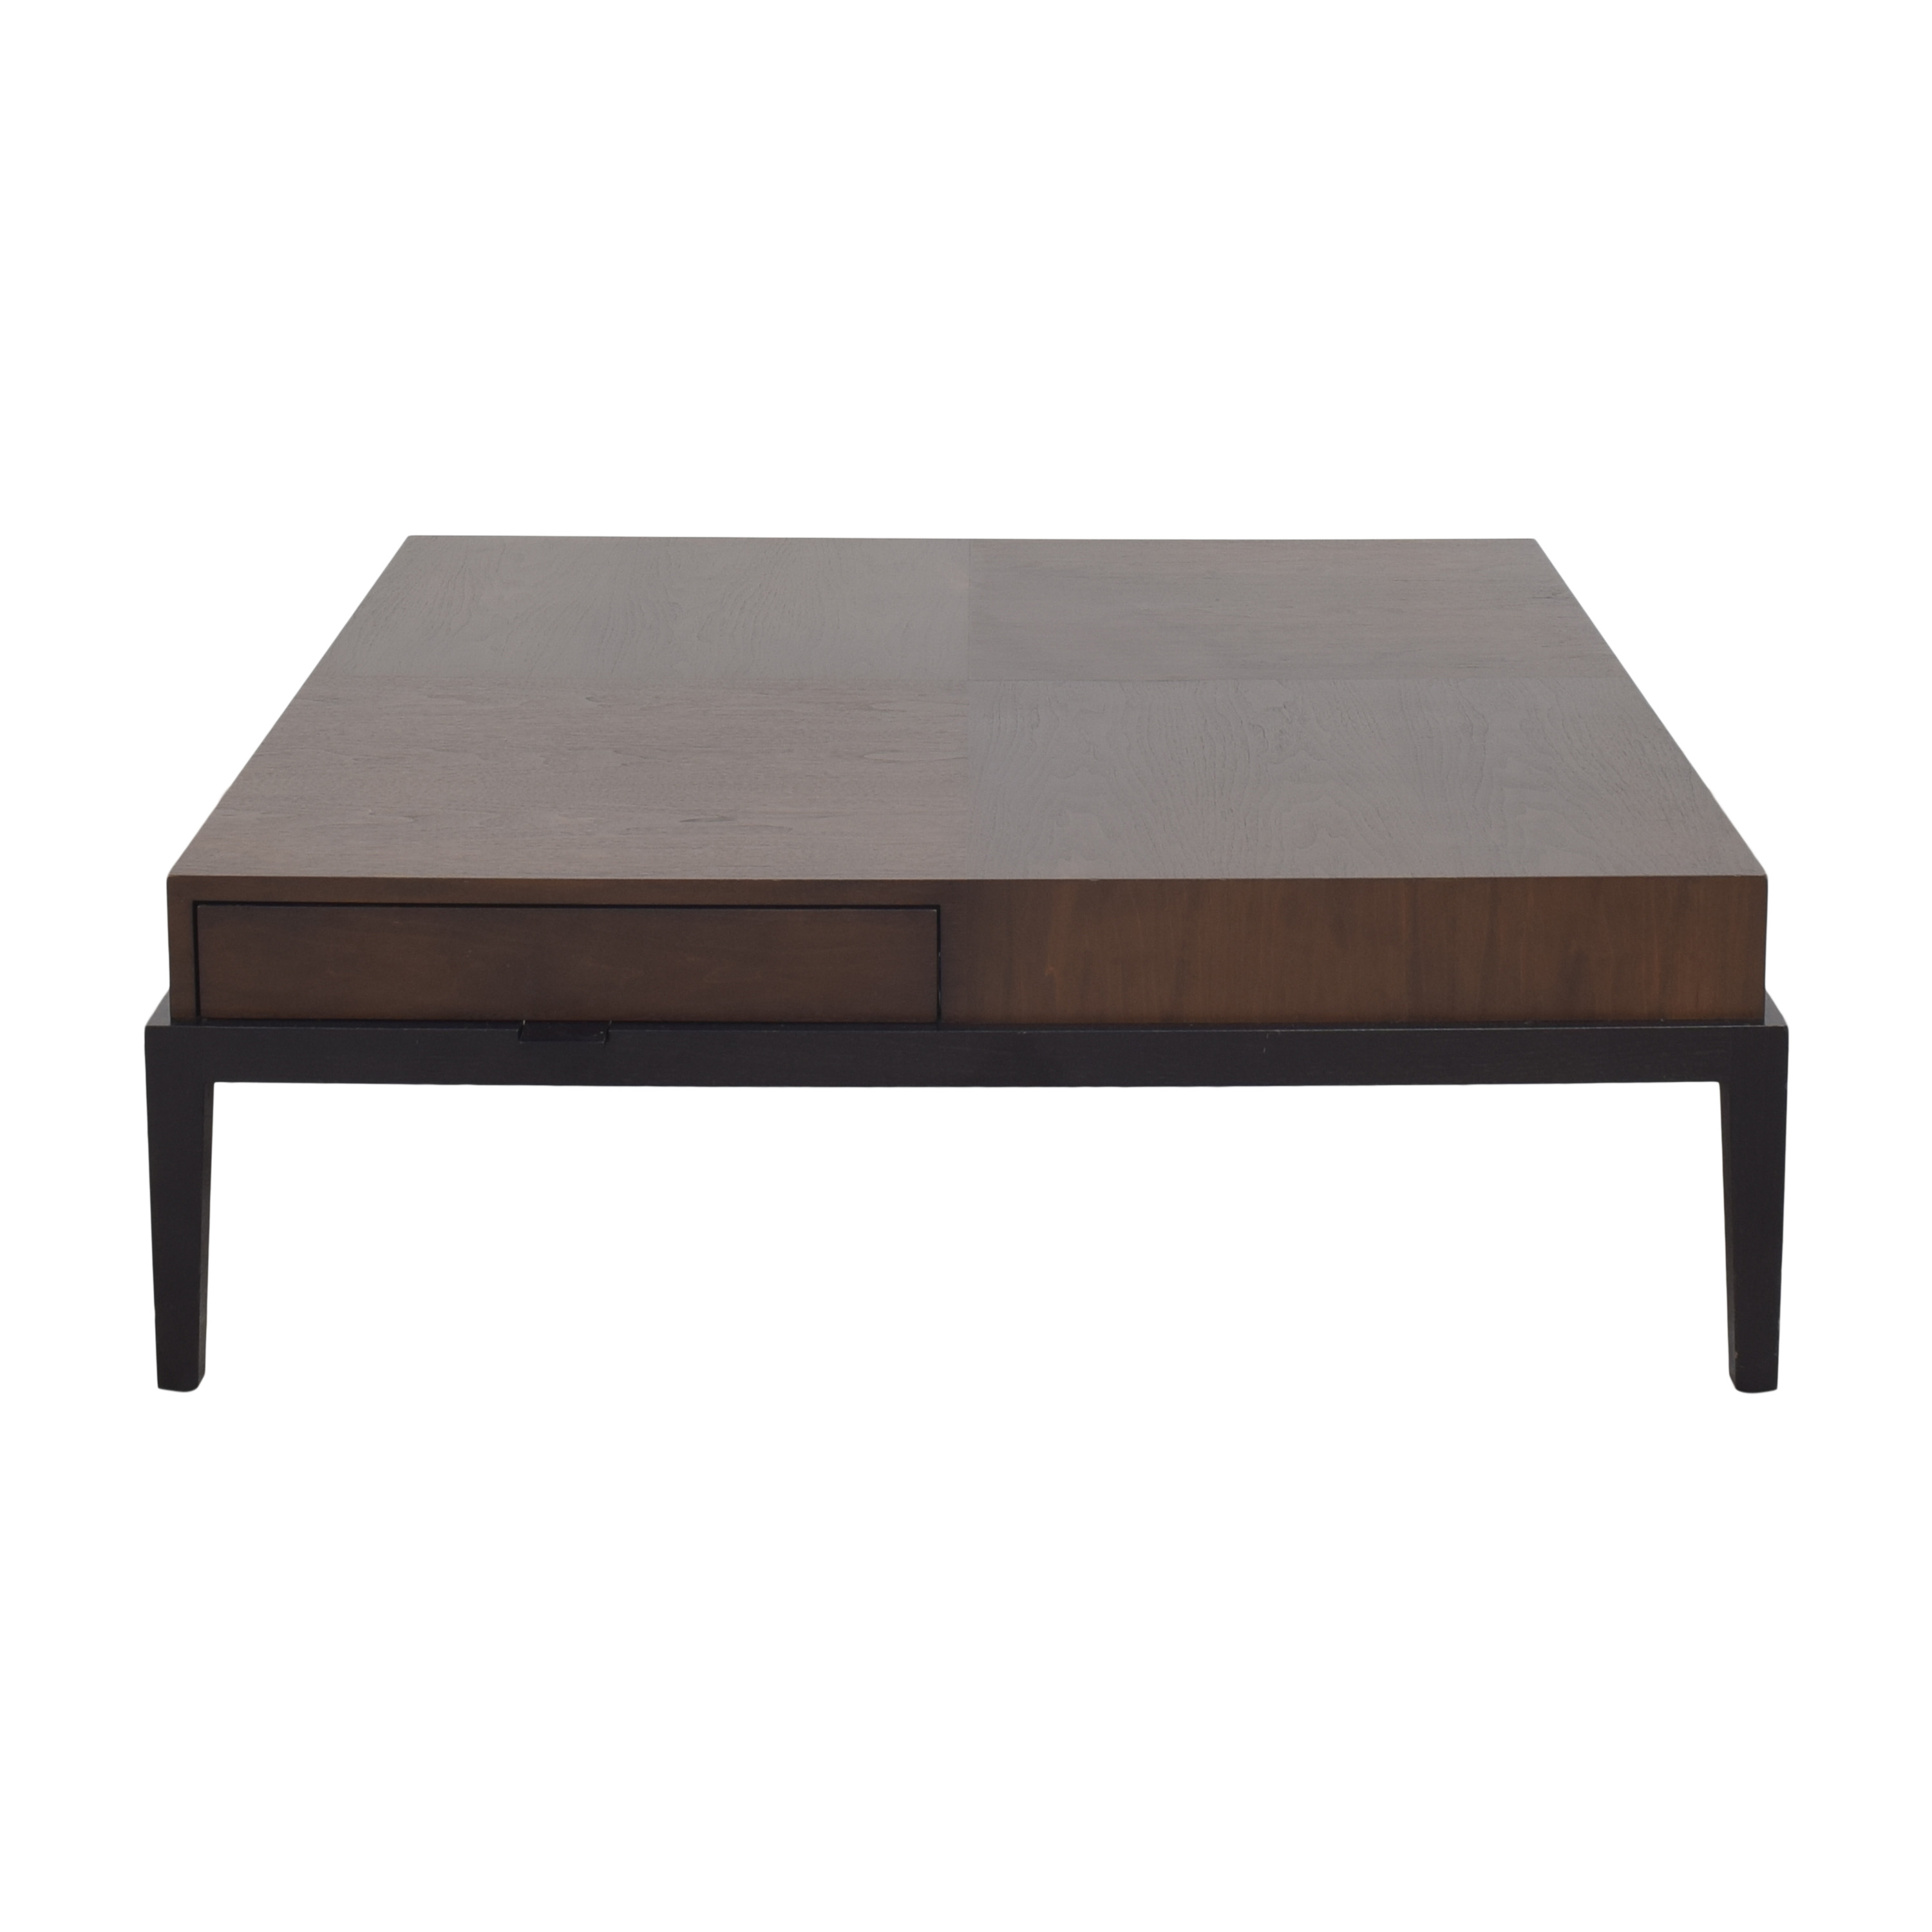 Holly Hunt Holly Hunt Monsieur Square Coffee Table by Christian Liaigre dimensions